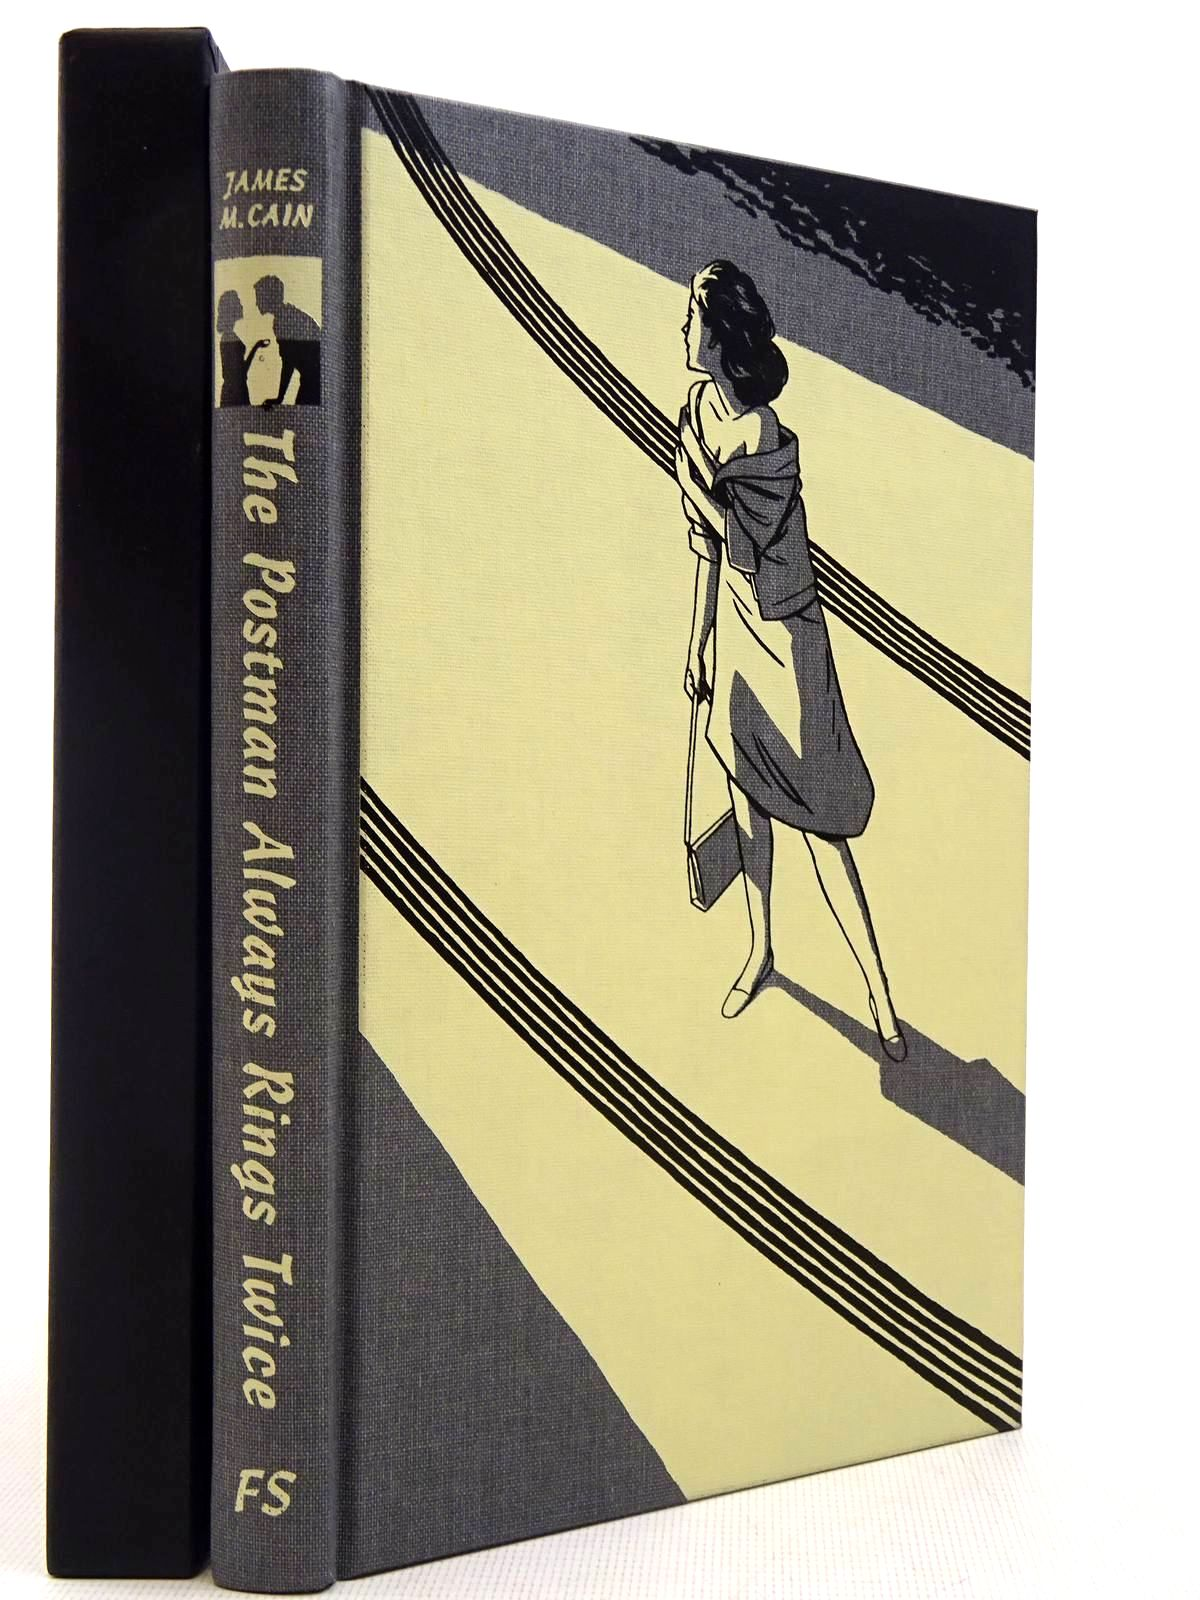 Photo of THE POSTMAN ALWAYS RINGS TWICE written by Cain, James M. illustrated by Leger, Patrick published by Folio Society (STOCK CODE: 2129366)  for sale by Stella & Rose's Books